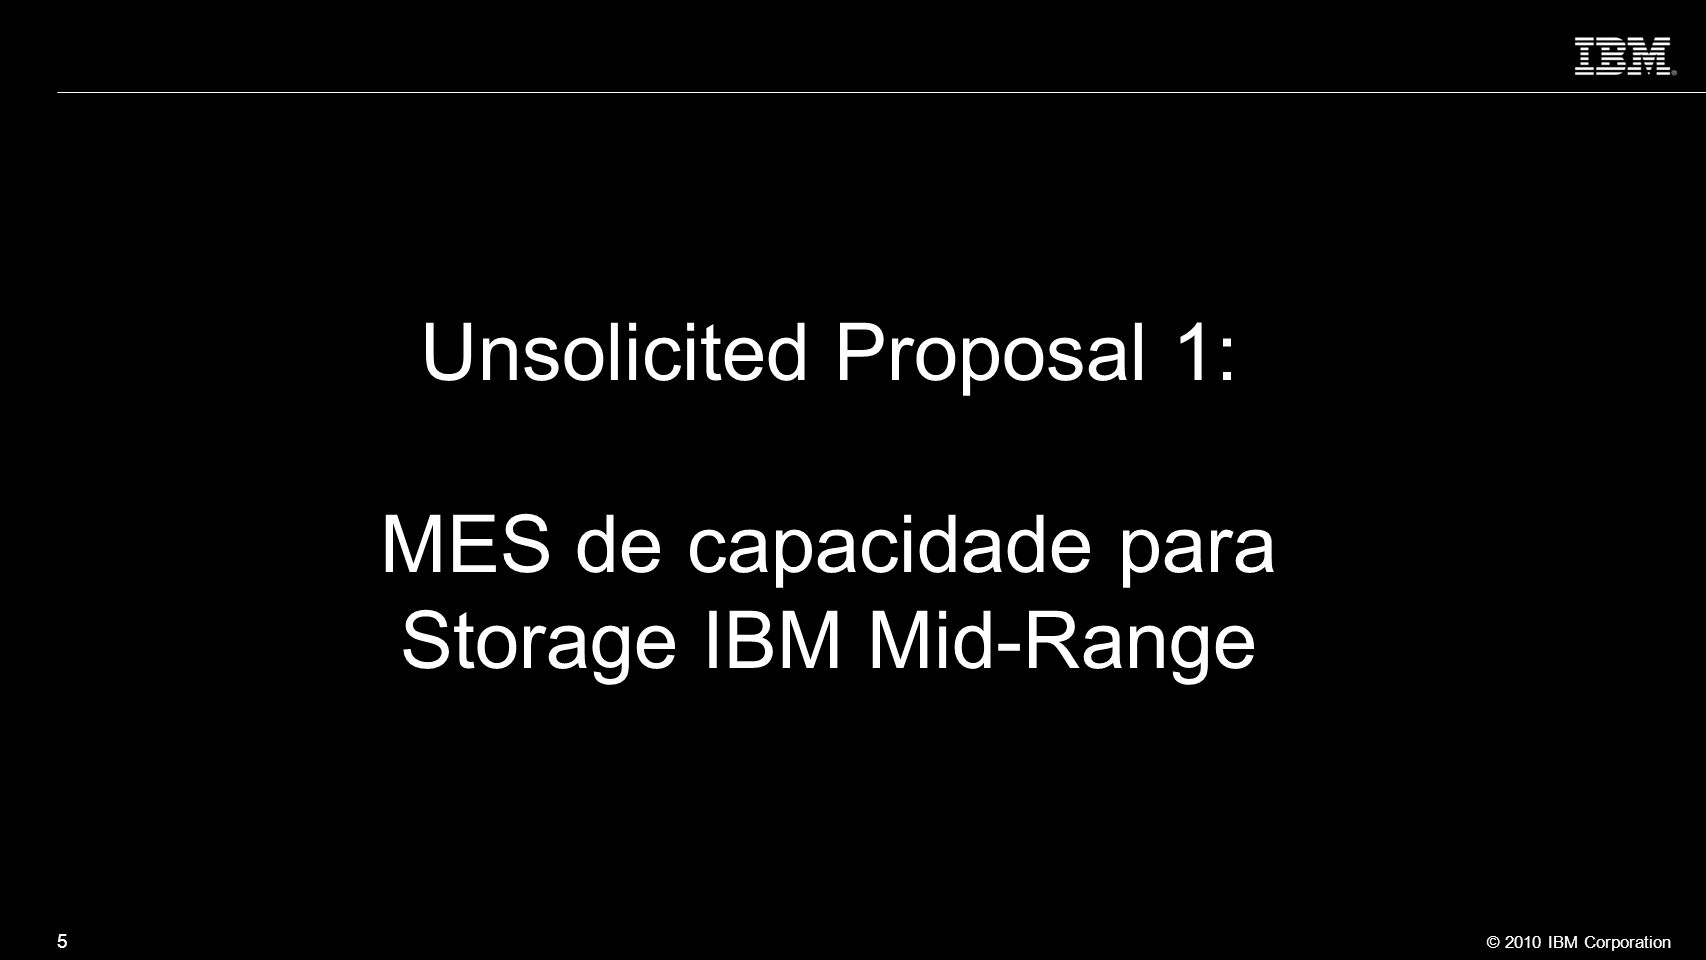 Unsolicited Proposal 1: MES de capacidade para Storage IBM Mid-Range